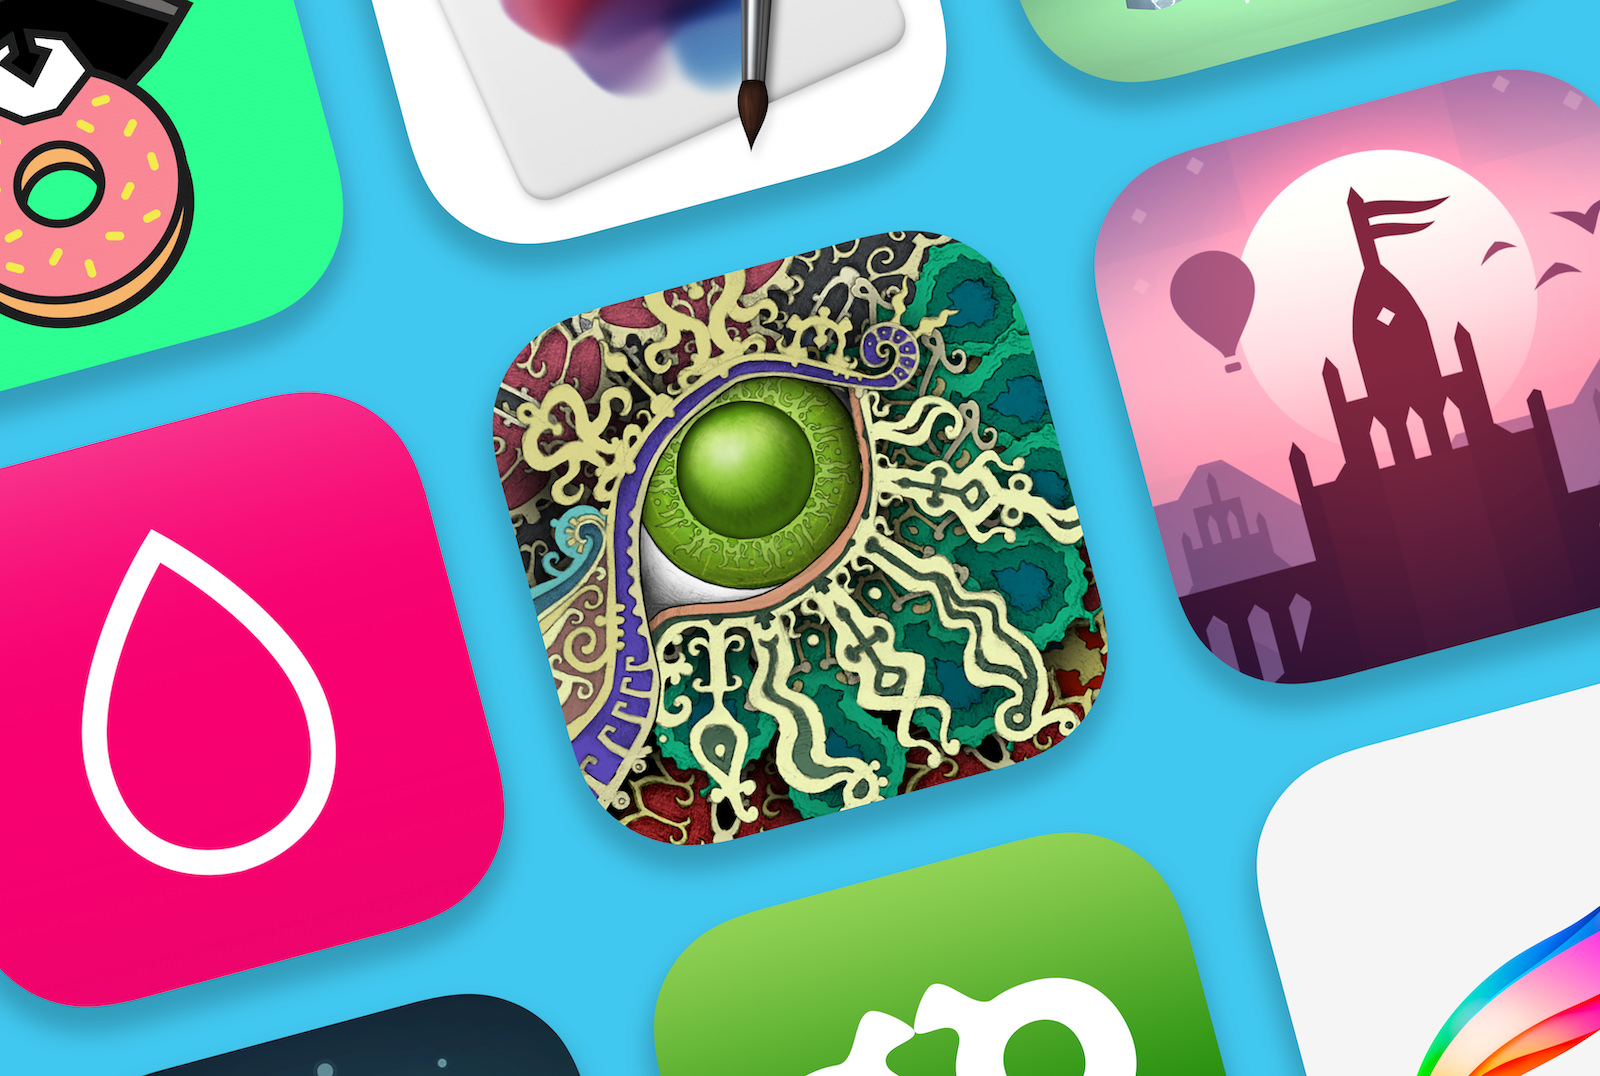 Apple-presents-best-of-2018-Apps-12032018.jpg